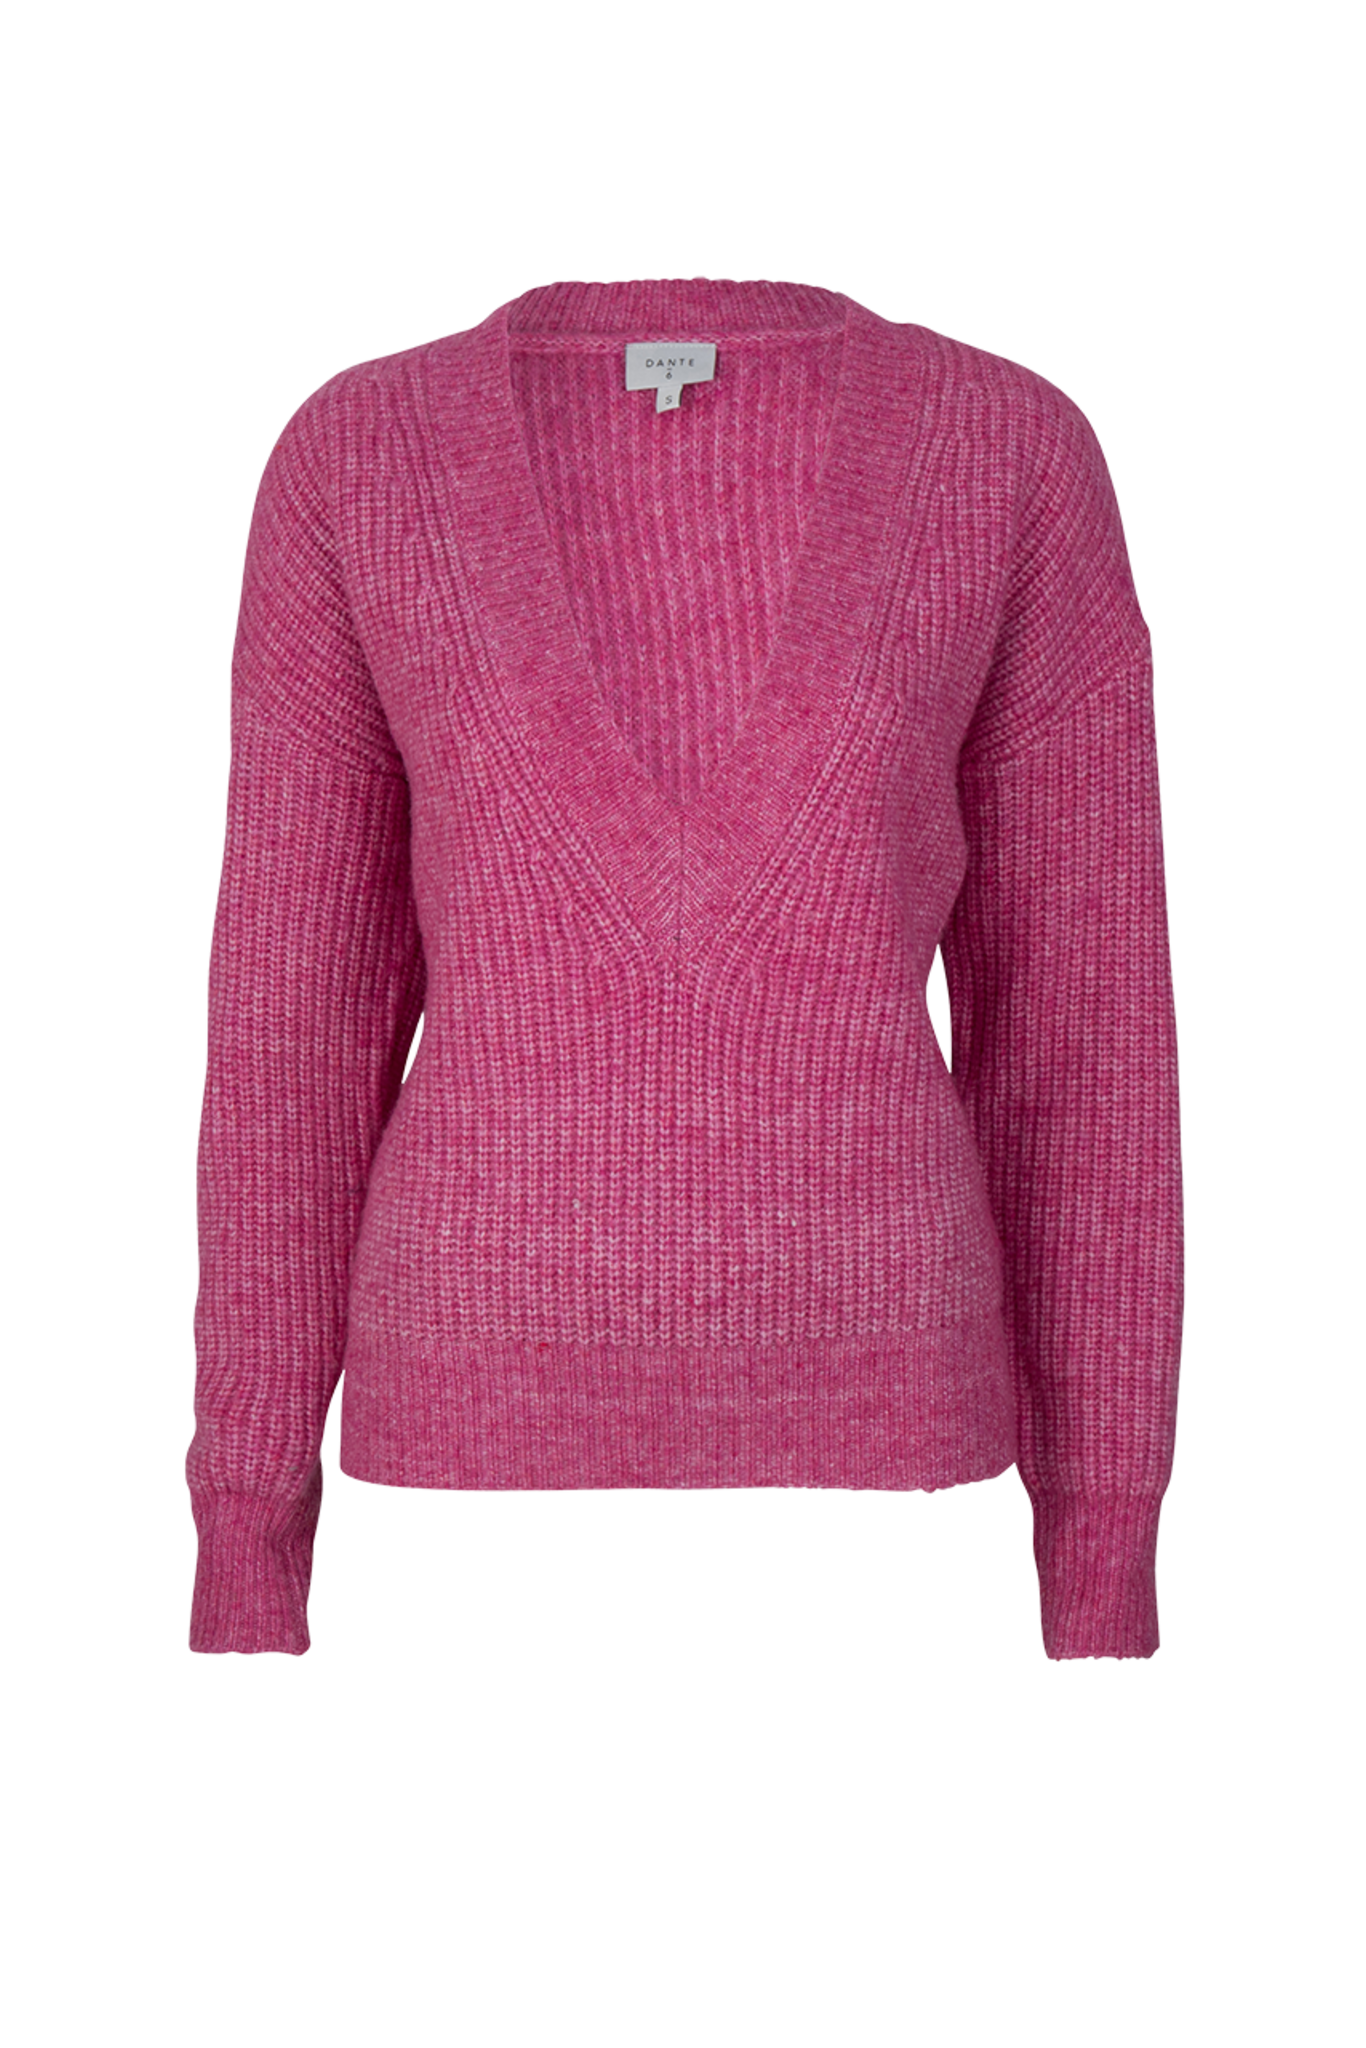 Taos Cropped Knitted Sweater - Ultra Pink-1